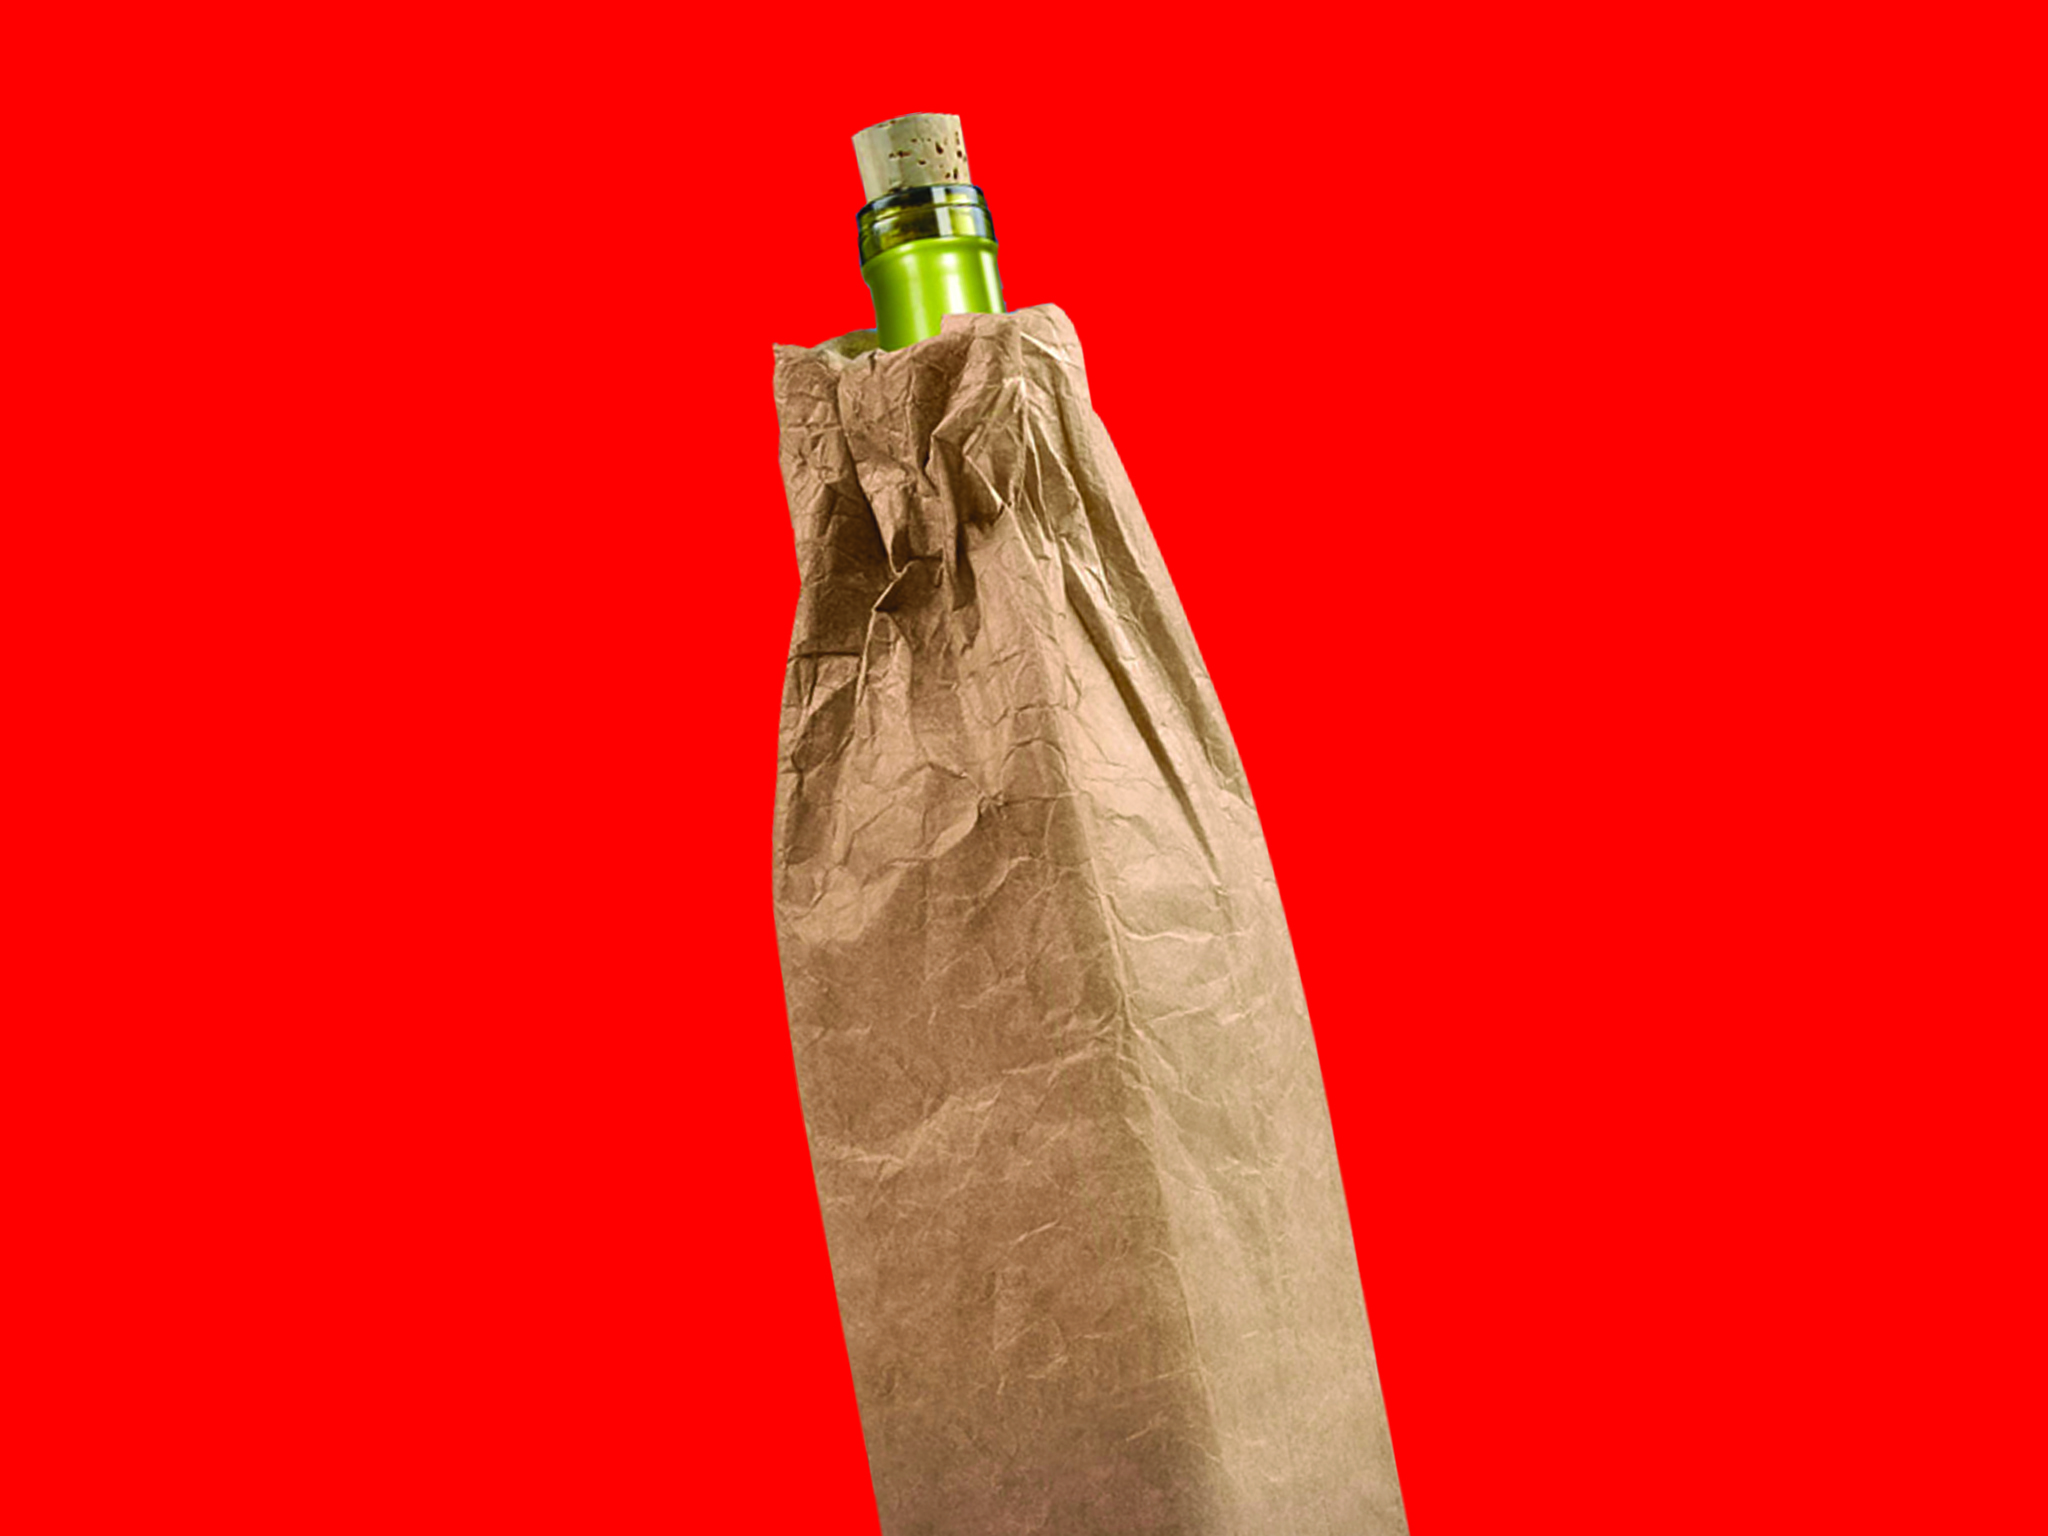 A genetic wine bottle with cork in a brown paper bag